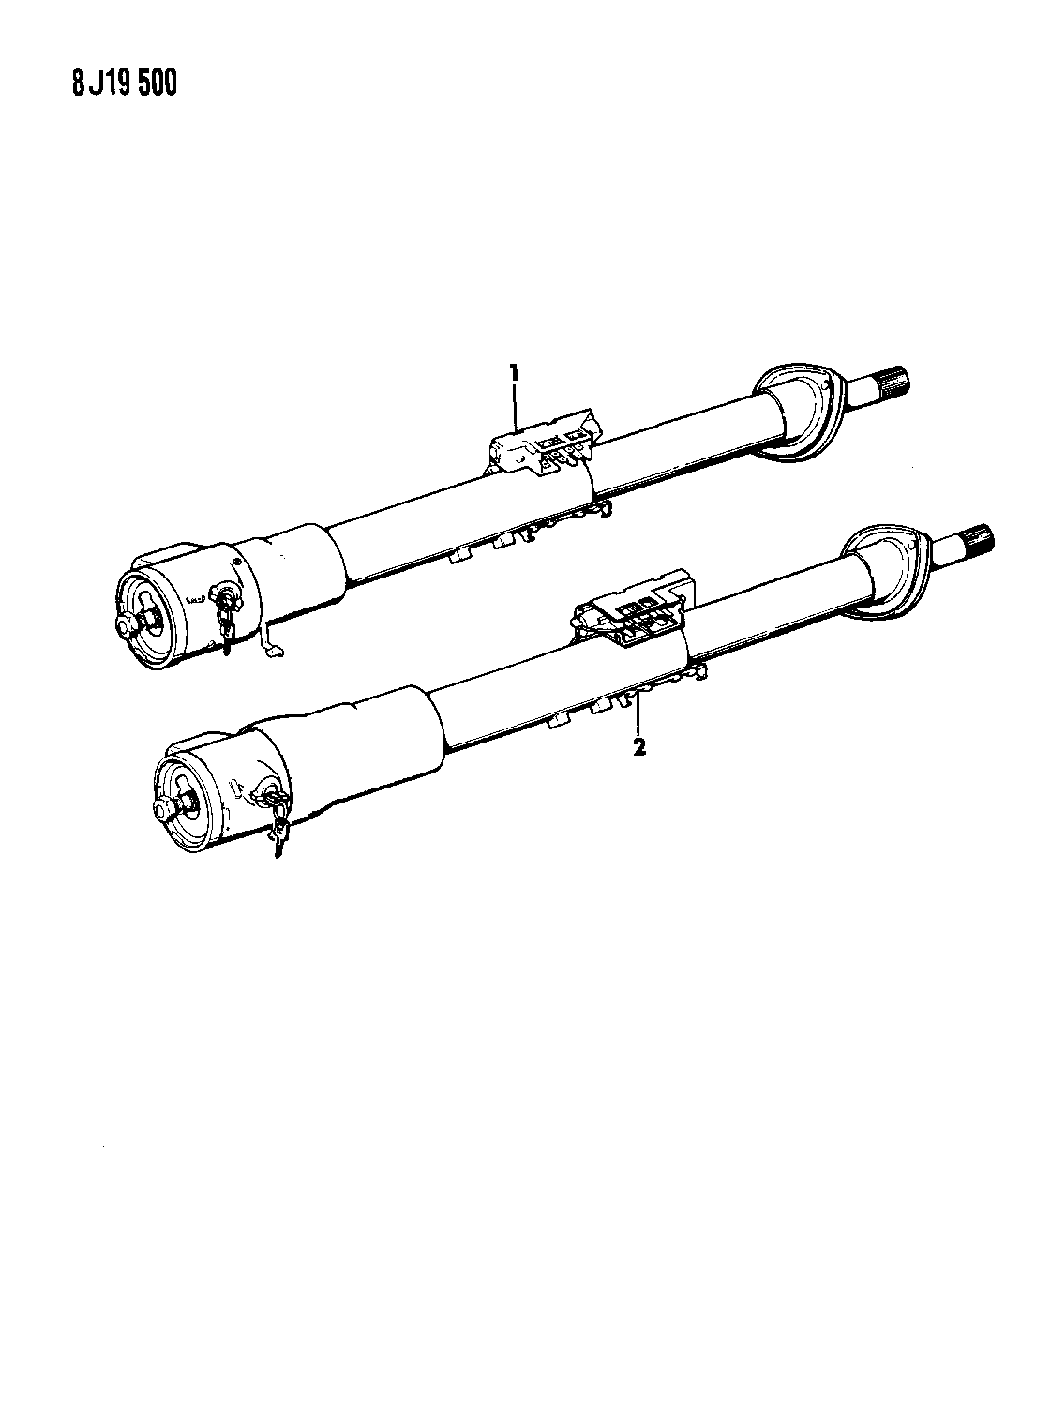 1989 Jeep Cherokee Column Assembly, Steering With Floor